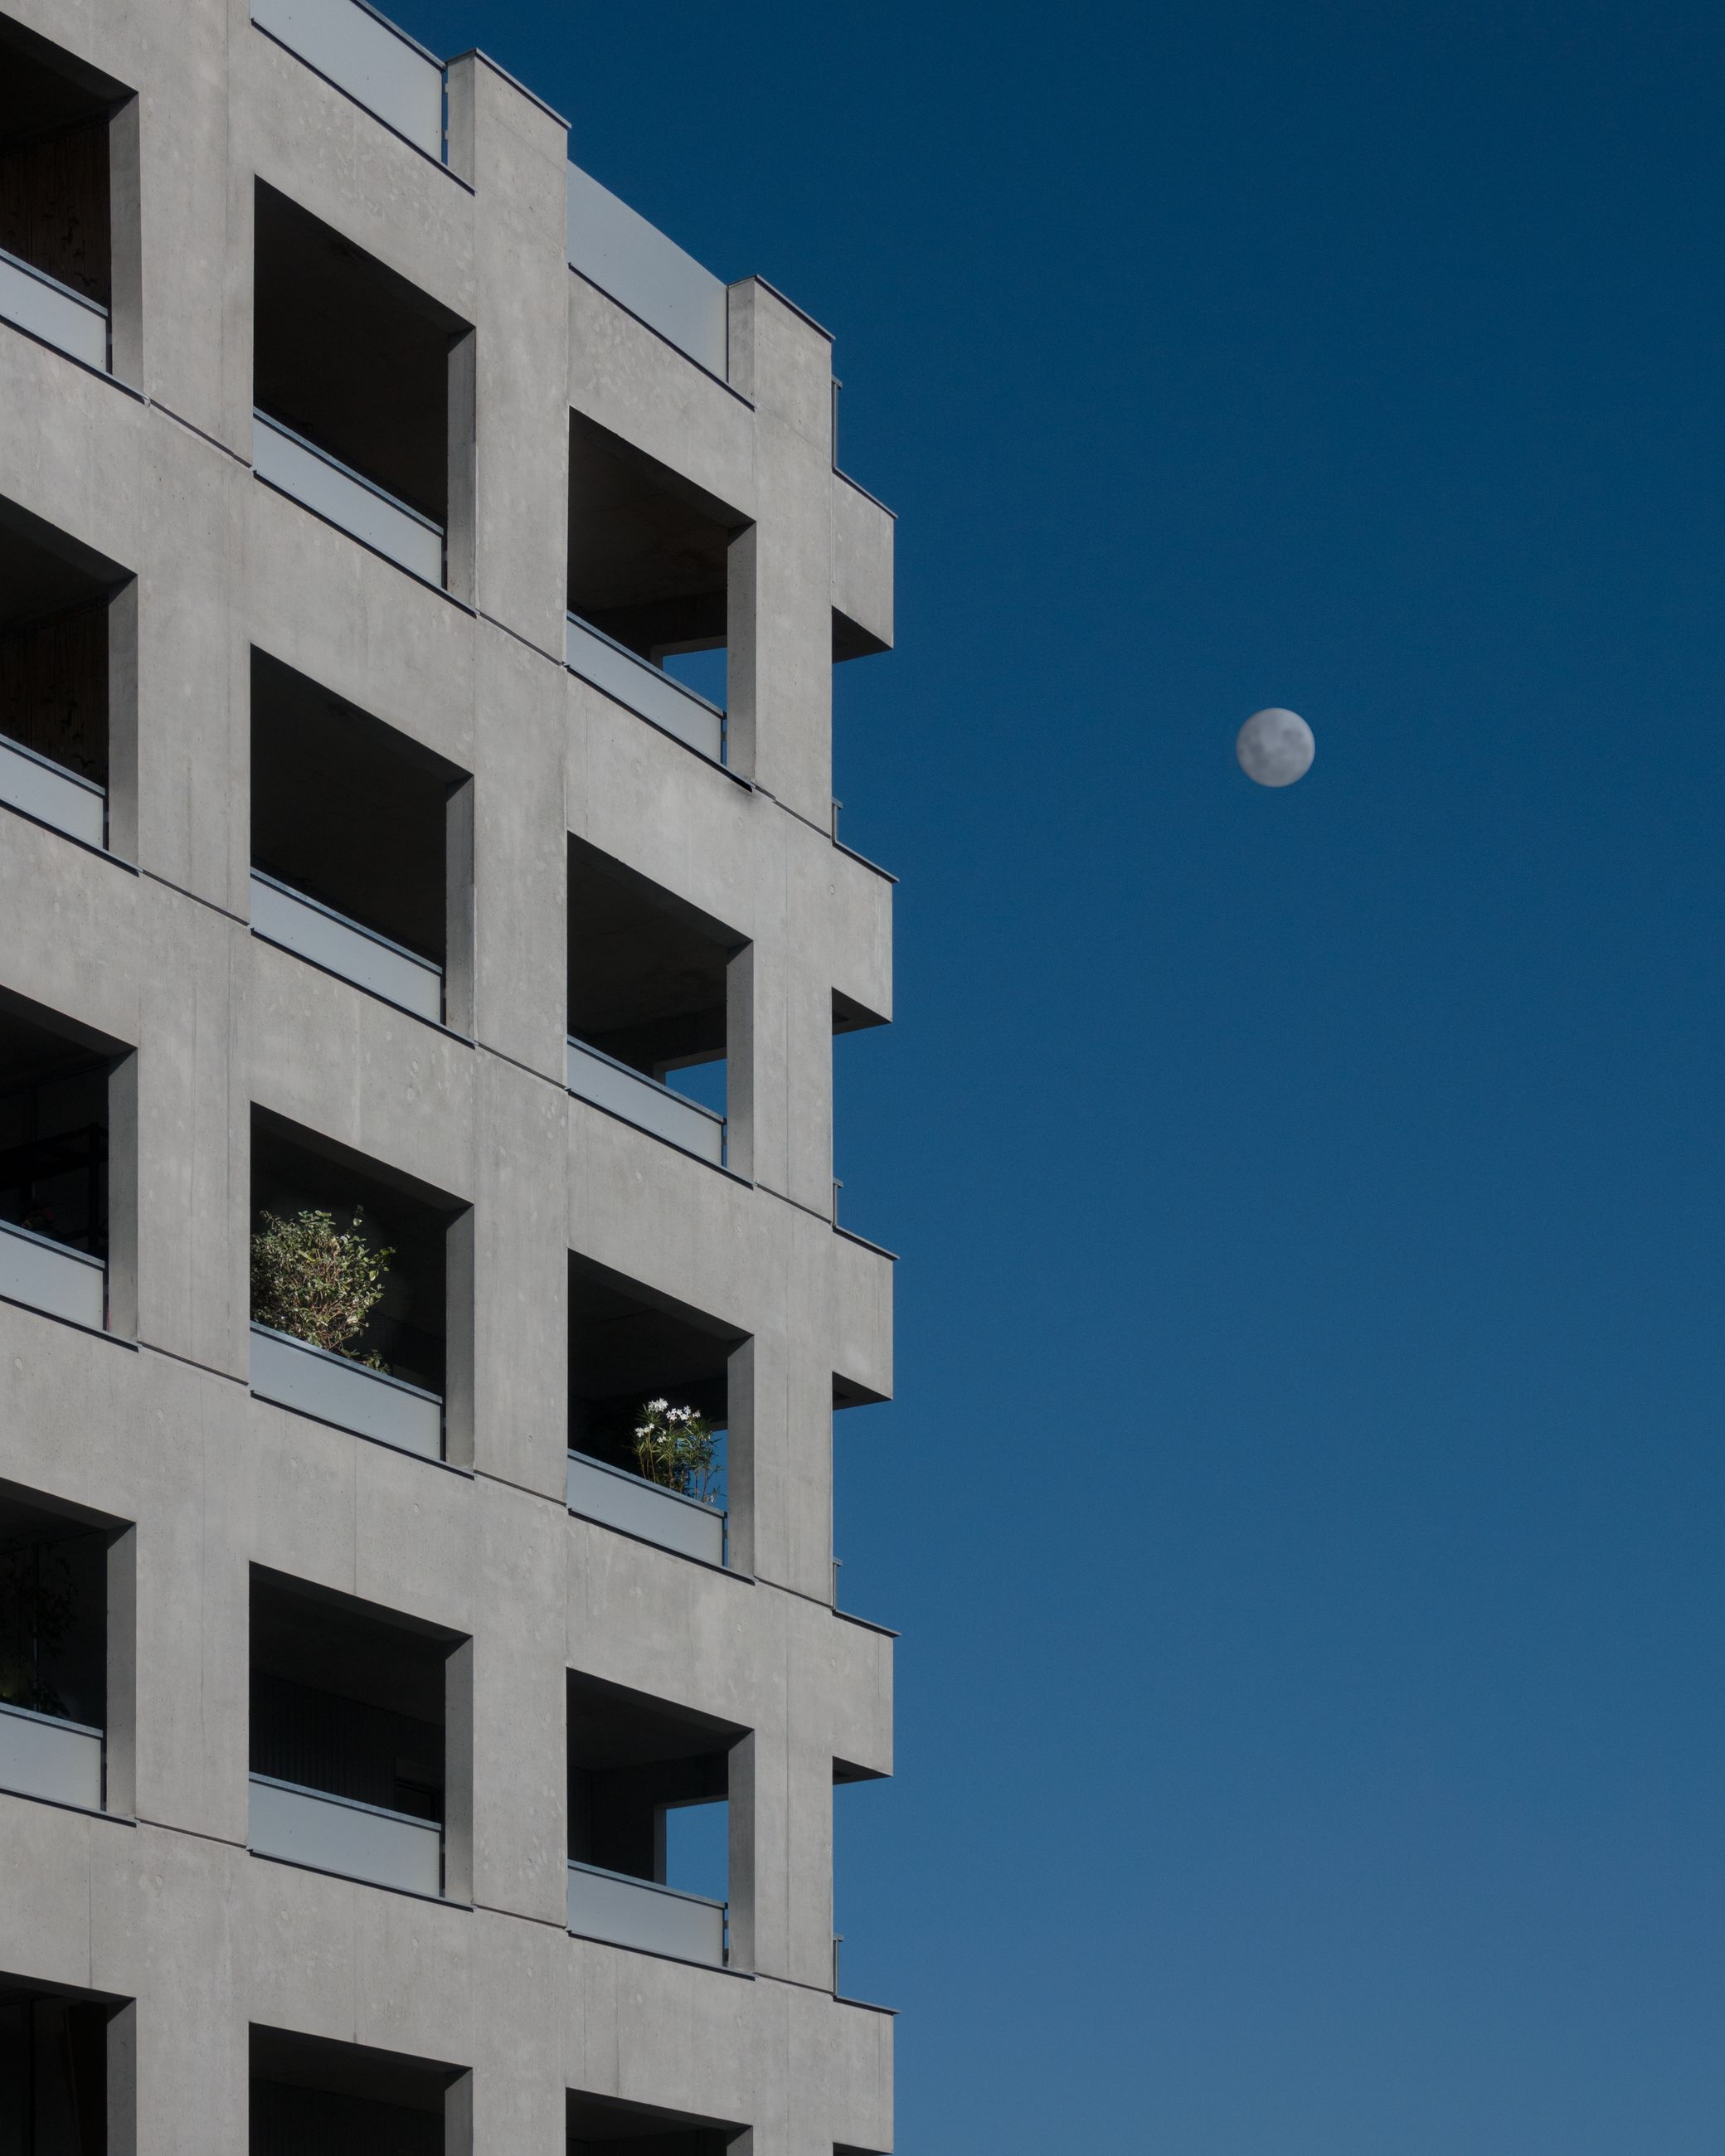 sky, built structure, architecture, building exterior, moon, building, clear sky, blue, no people, low angle view, nature, window, outdoors, city, sunlight, tall - high, copy space, modern, apartment